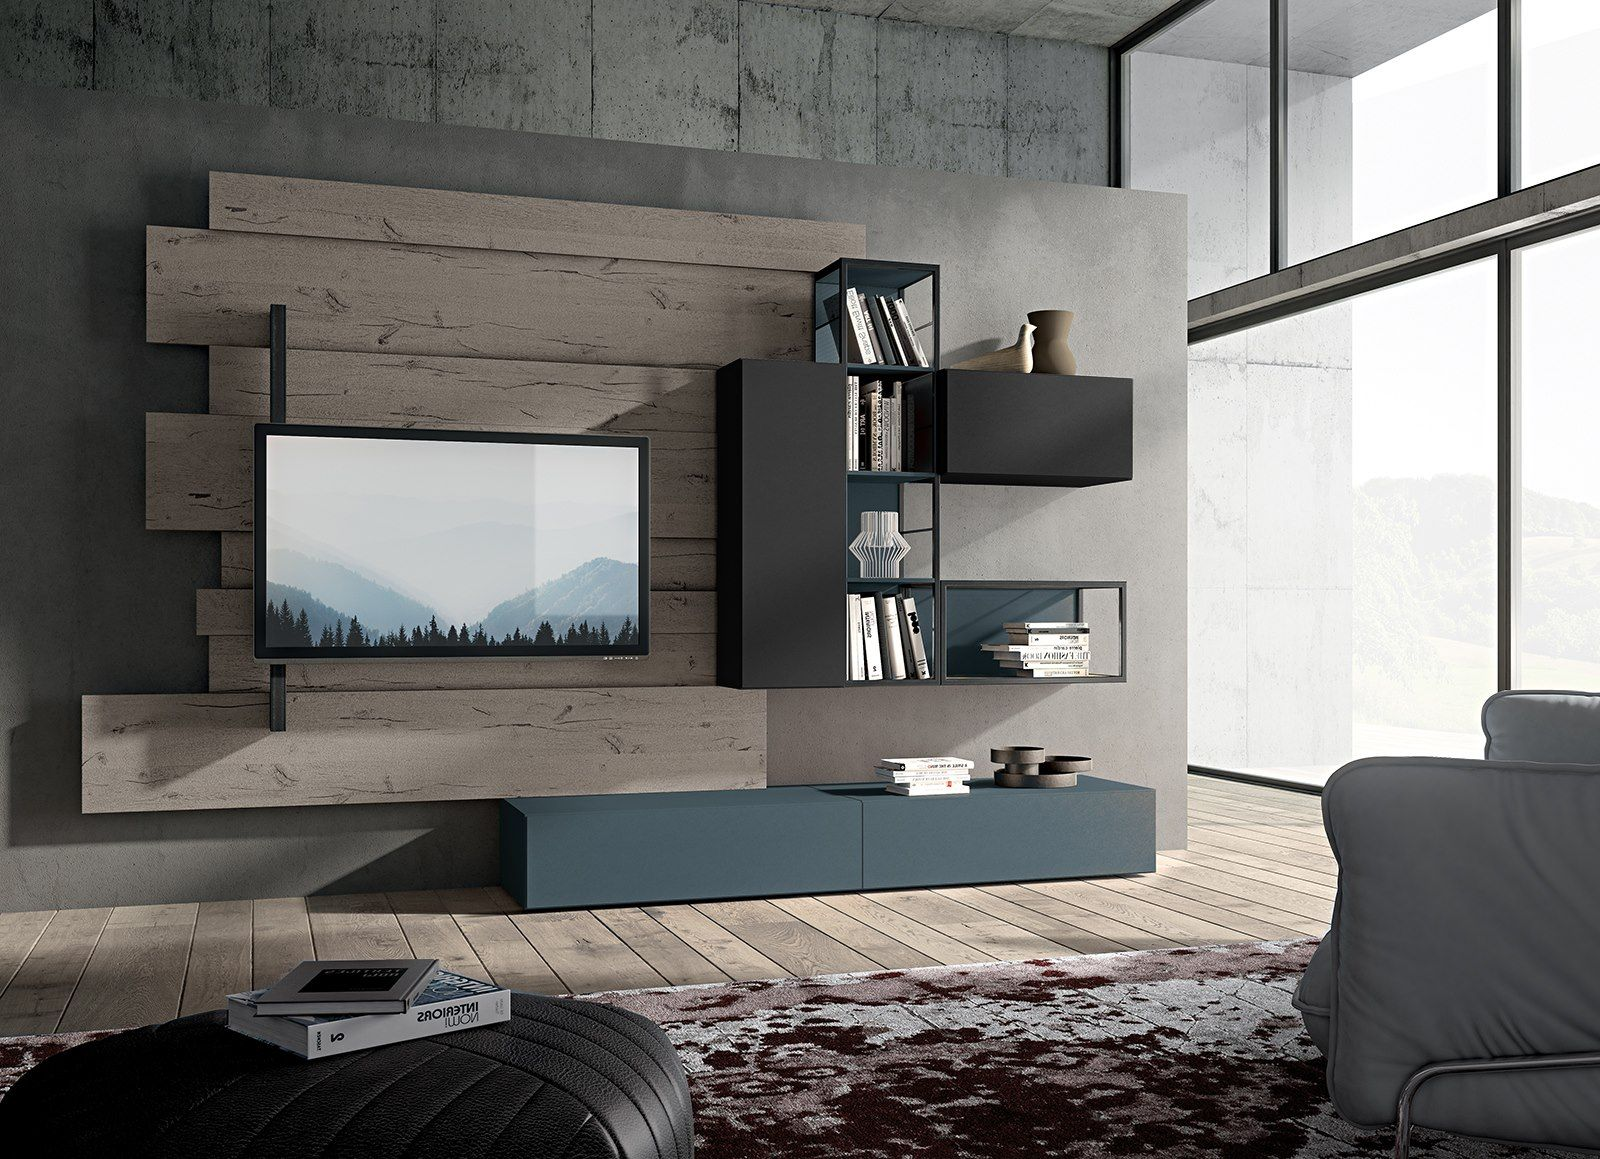 Sectional wall mounted TV wall system Jeannieu0027s